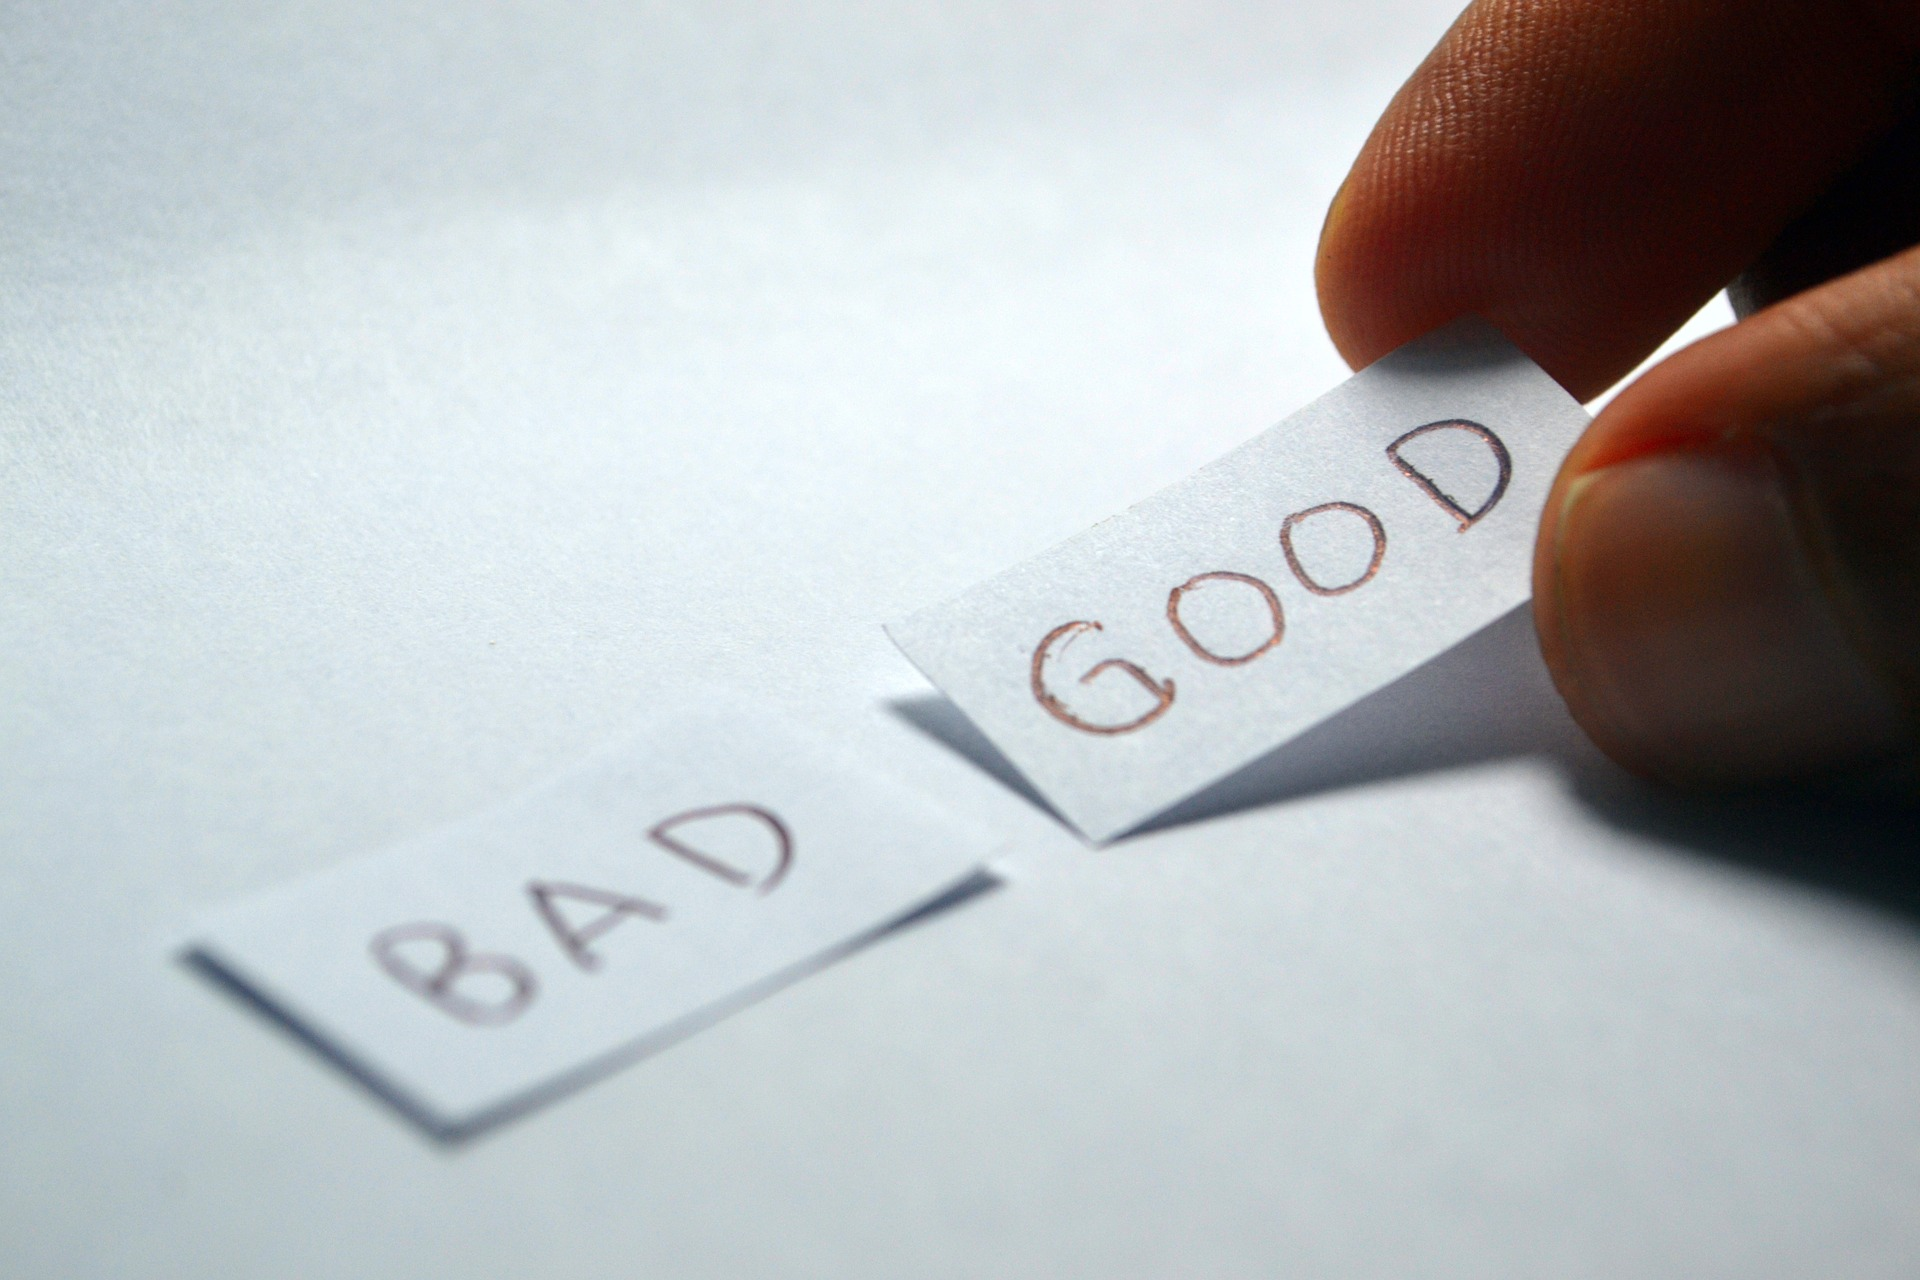 image: 2 pieces of paper saying bad and good. A hand is picking up the one that says good